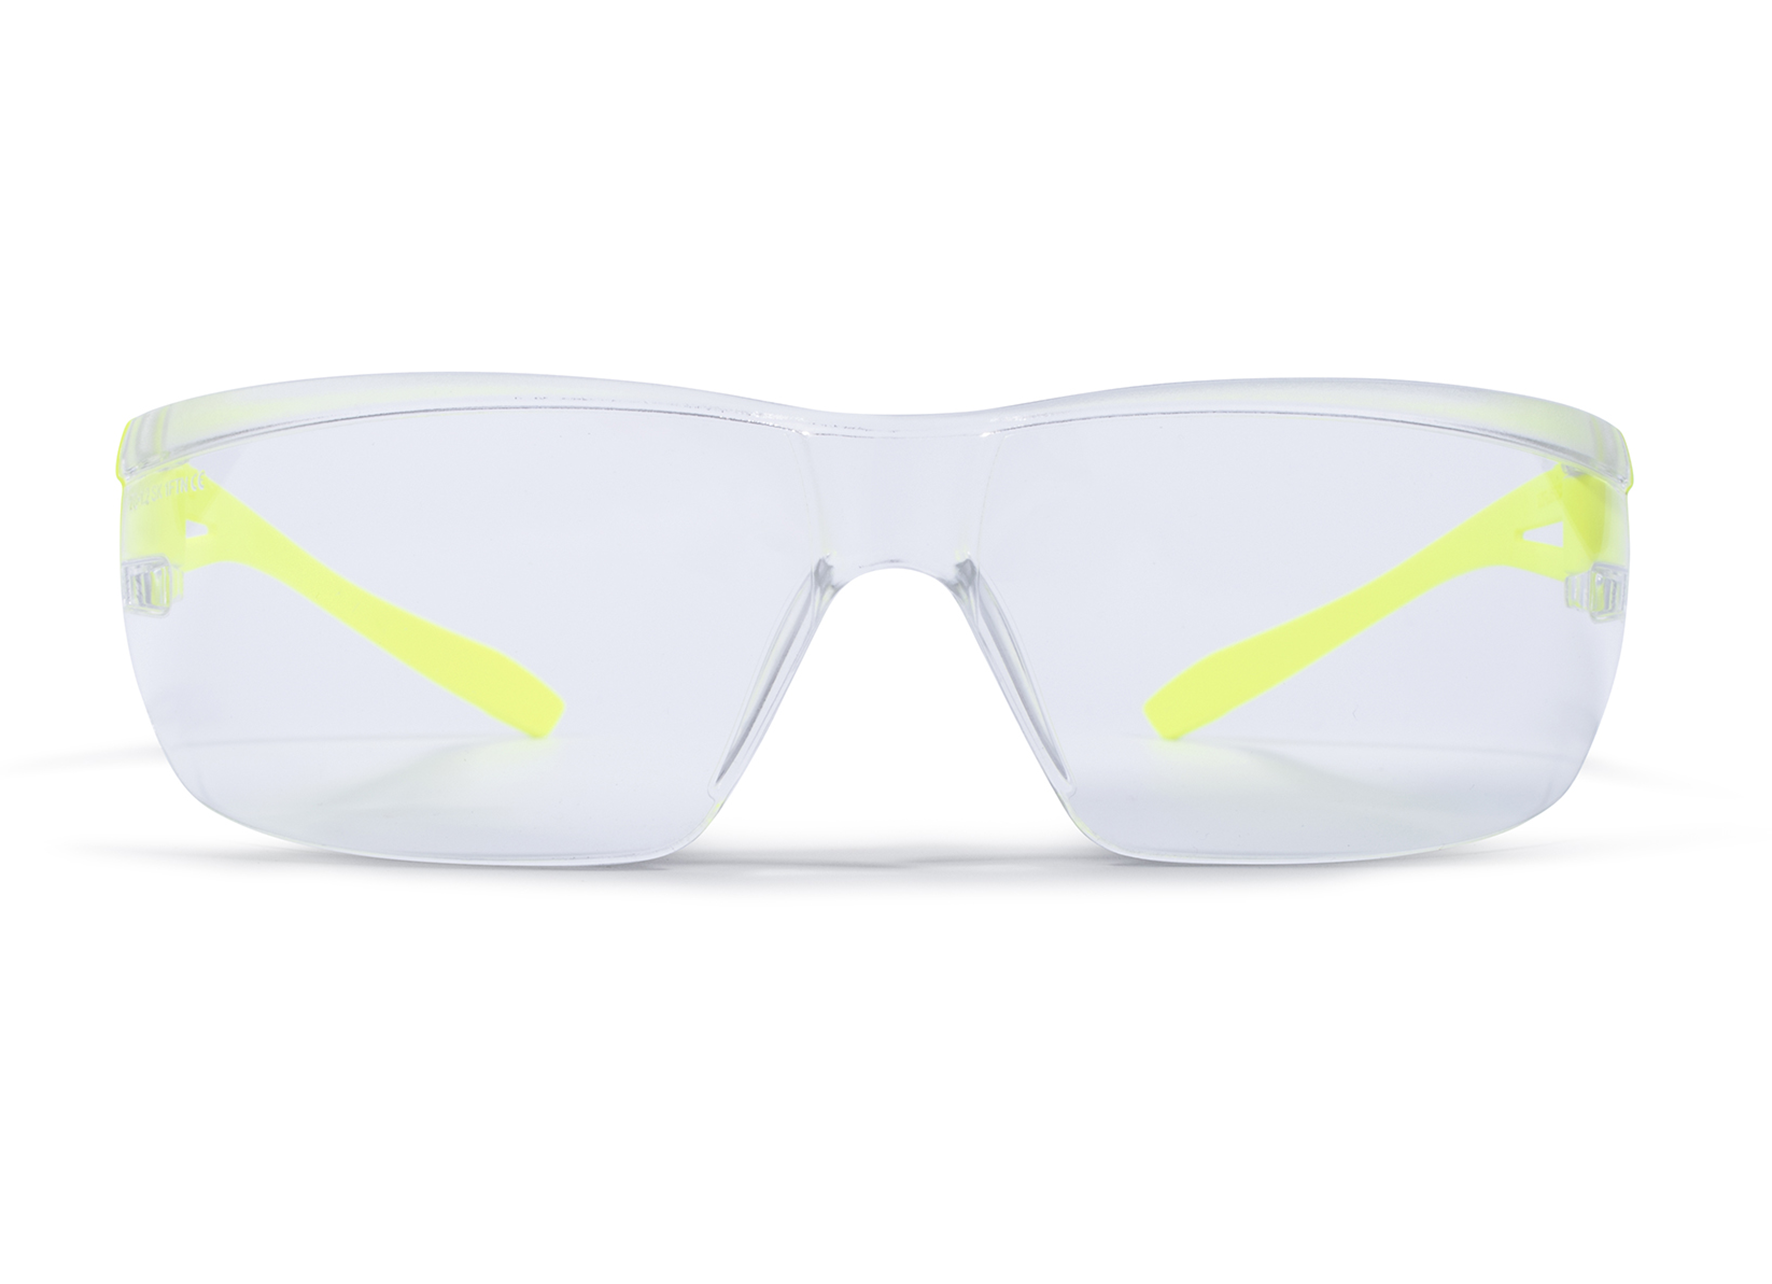 Safety Spectacles ZEKLER 36 HI-VIS